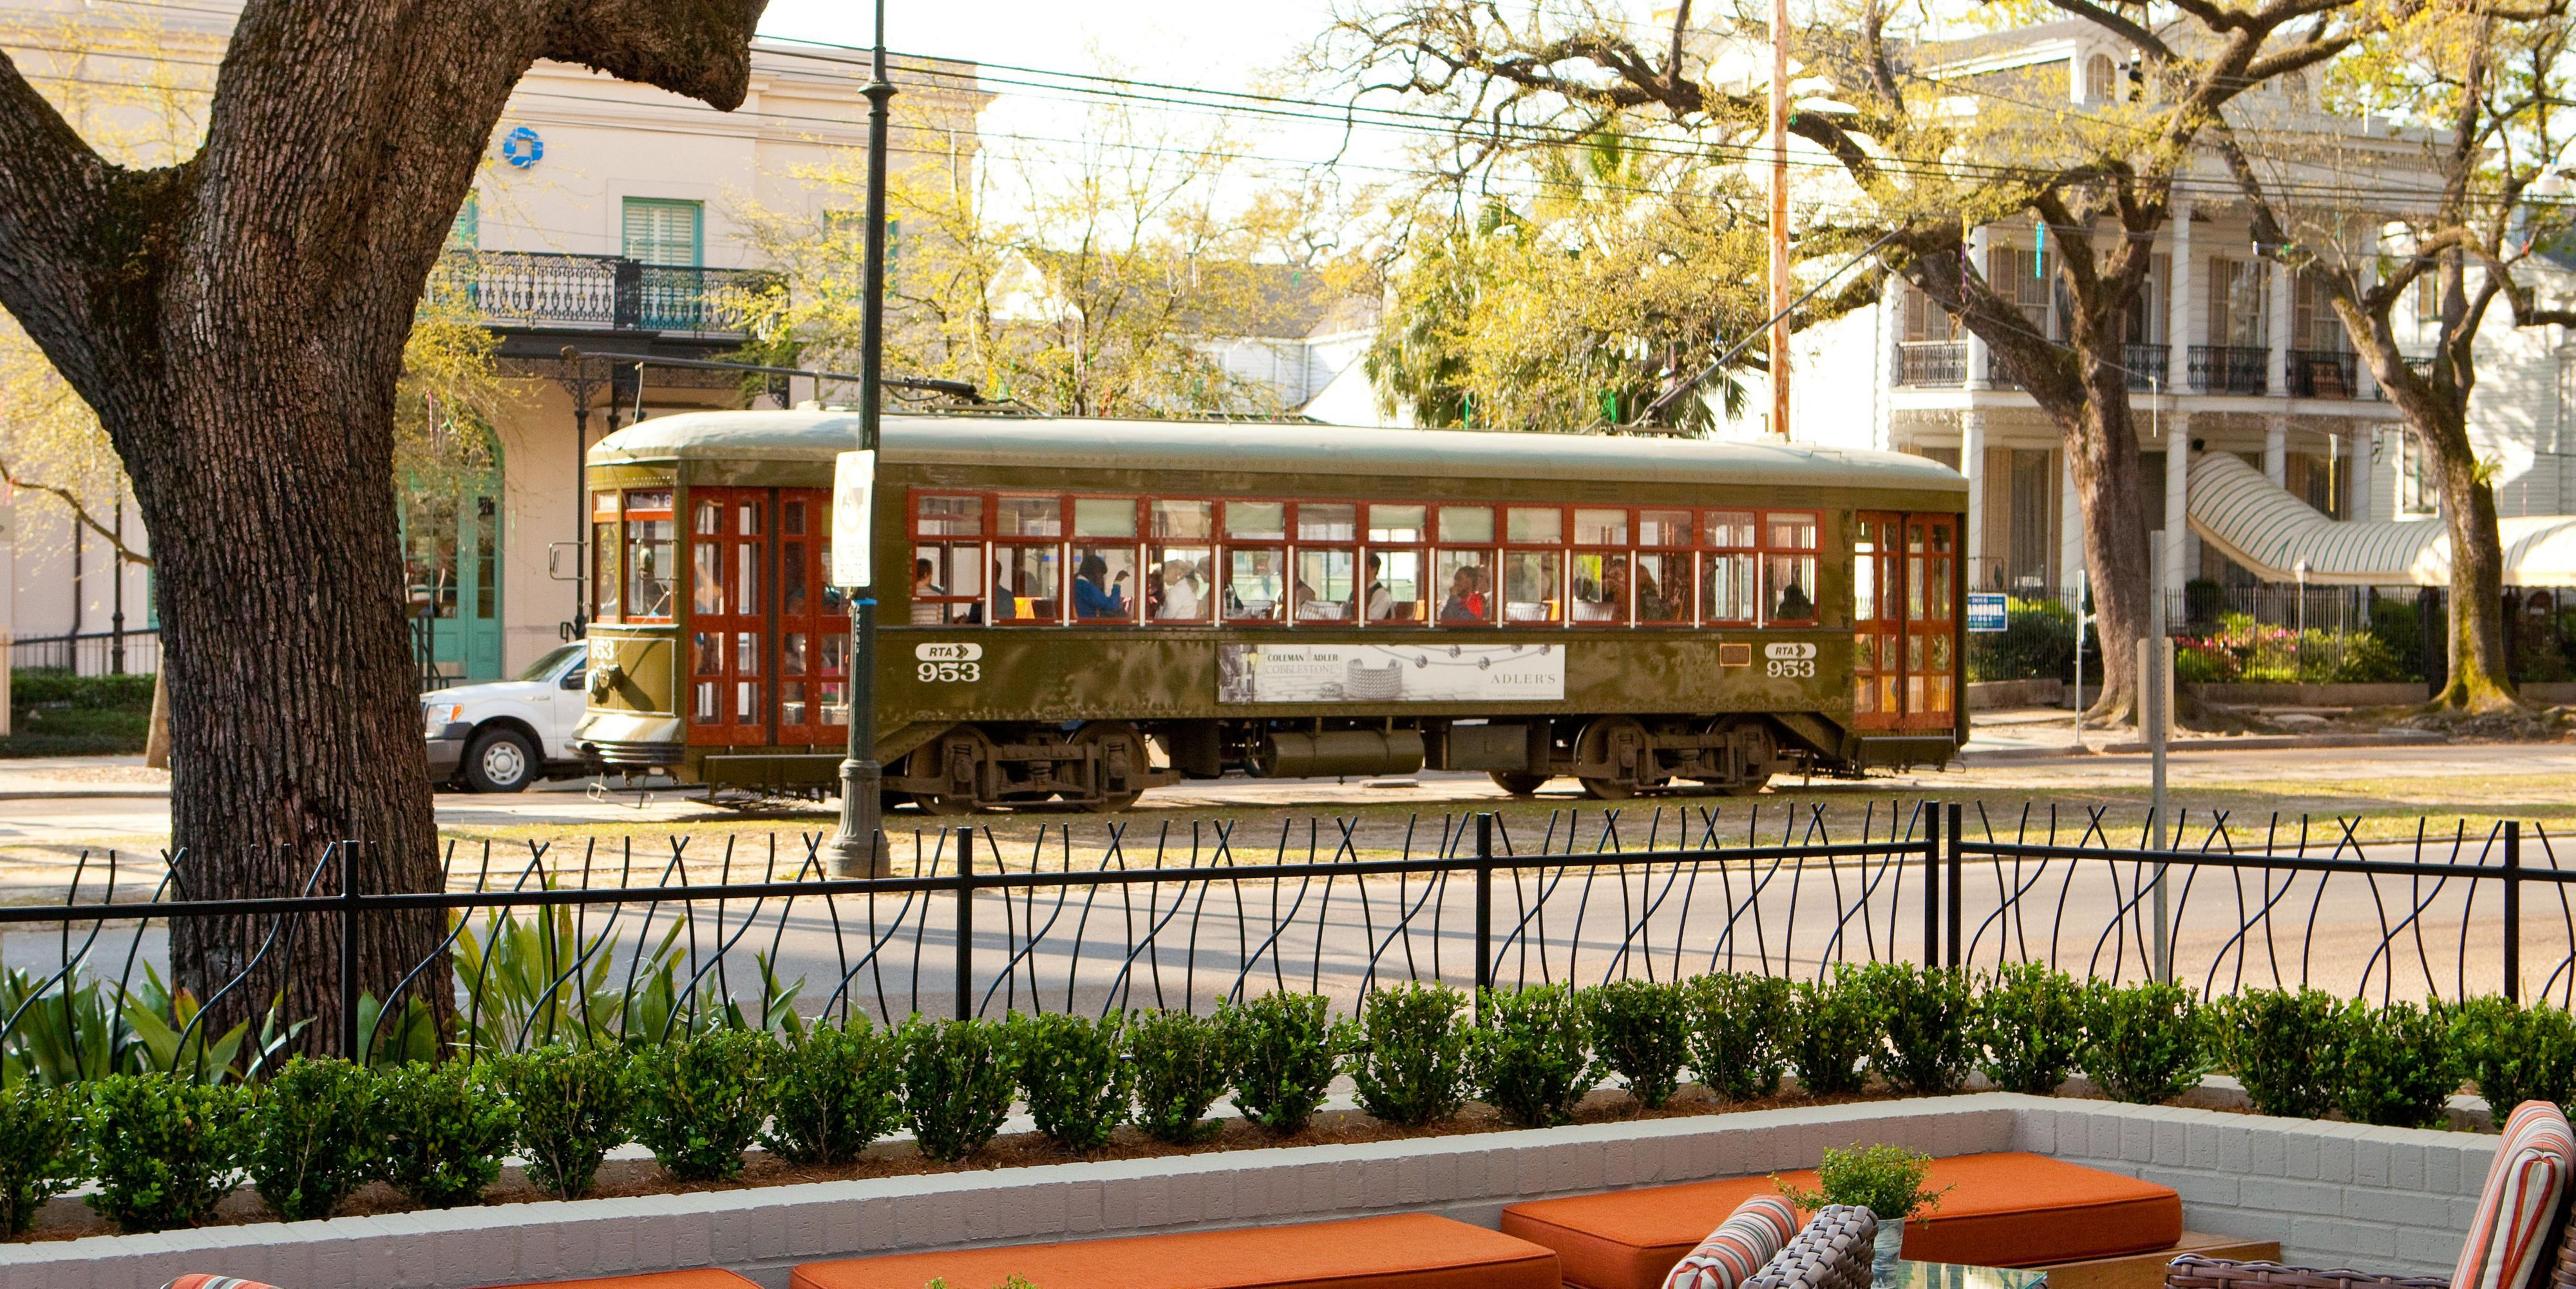 St. Charles Avenue Streetcar; Outdoor Seating Near Our Relaxing Water  Feature; Front Desk Hotel Indigo New Orleans Garden District ...